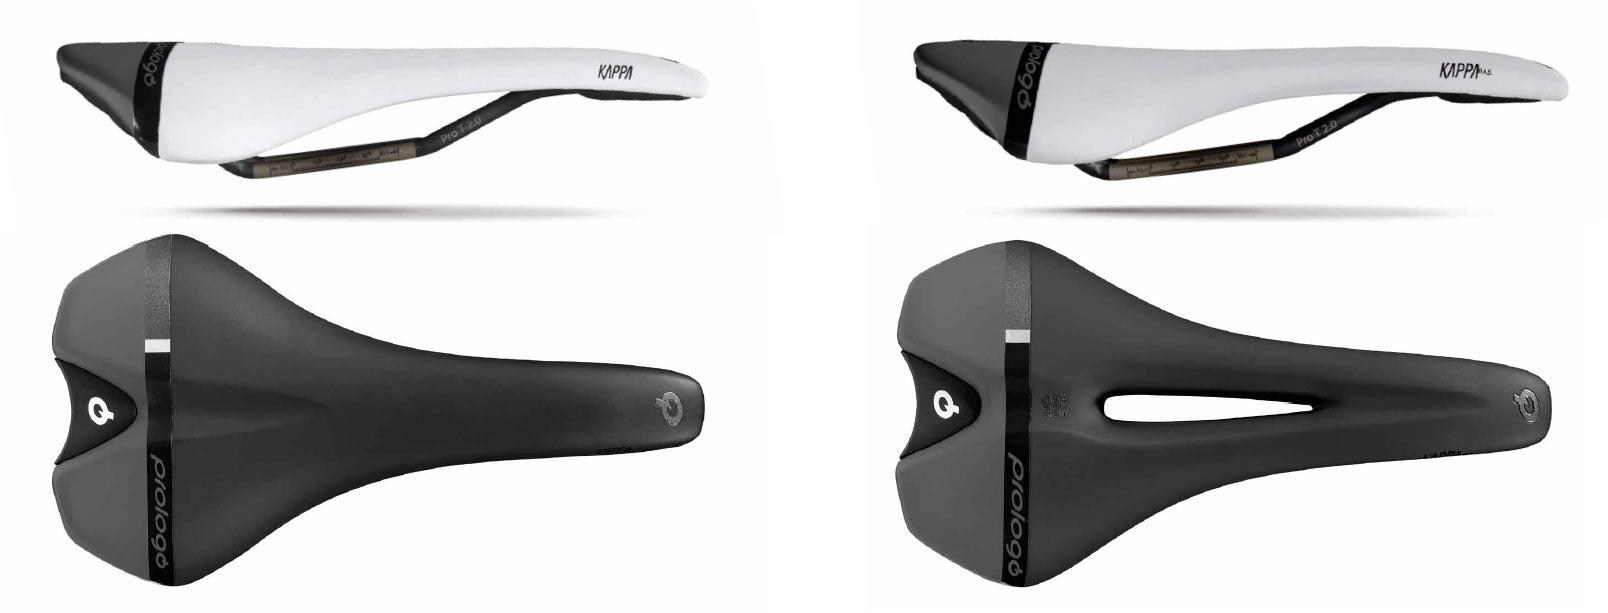 prologo kappa is an affordable gravel bike saddle with or without a center relief cutout channel